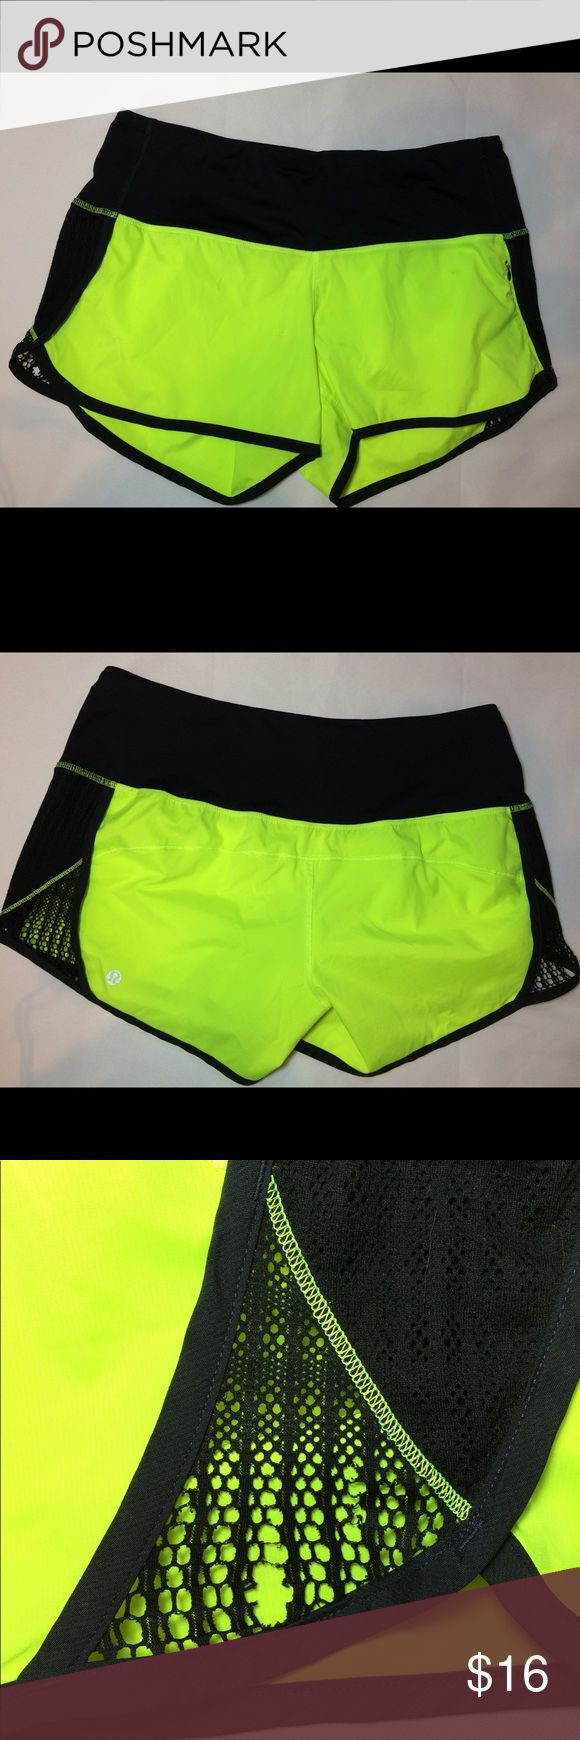 Lululemon Shorts -Size 8 Lululemon Shorts -Size 8- Neon and Black- Mesh accents on side some some wear. Imperfections are not very noticeable. Please see pics. Other than mesh imperfections, these shorts are still in great shape! Bundle for discounts! :) lululemon athletica Shorts Skorts